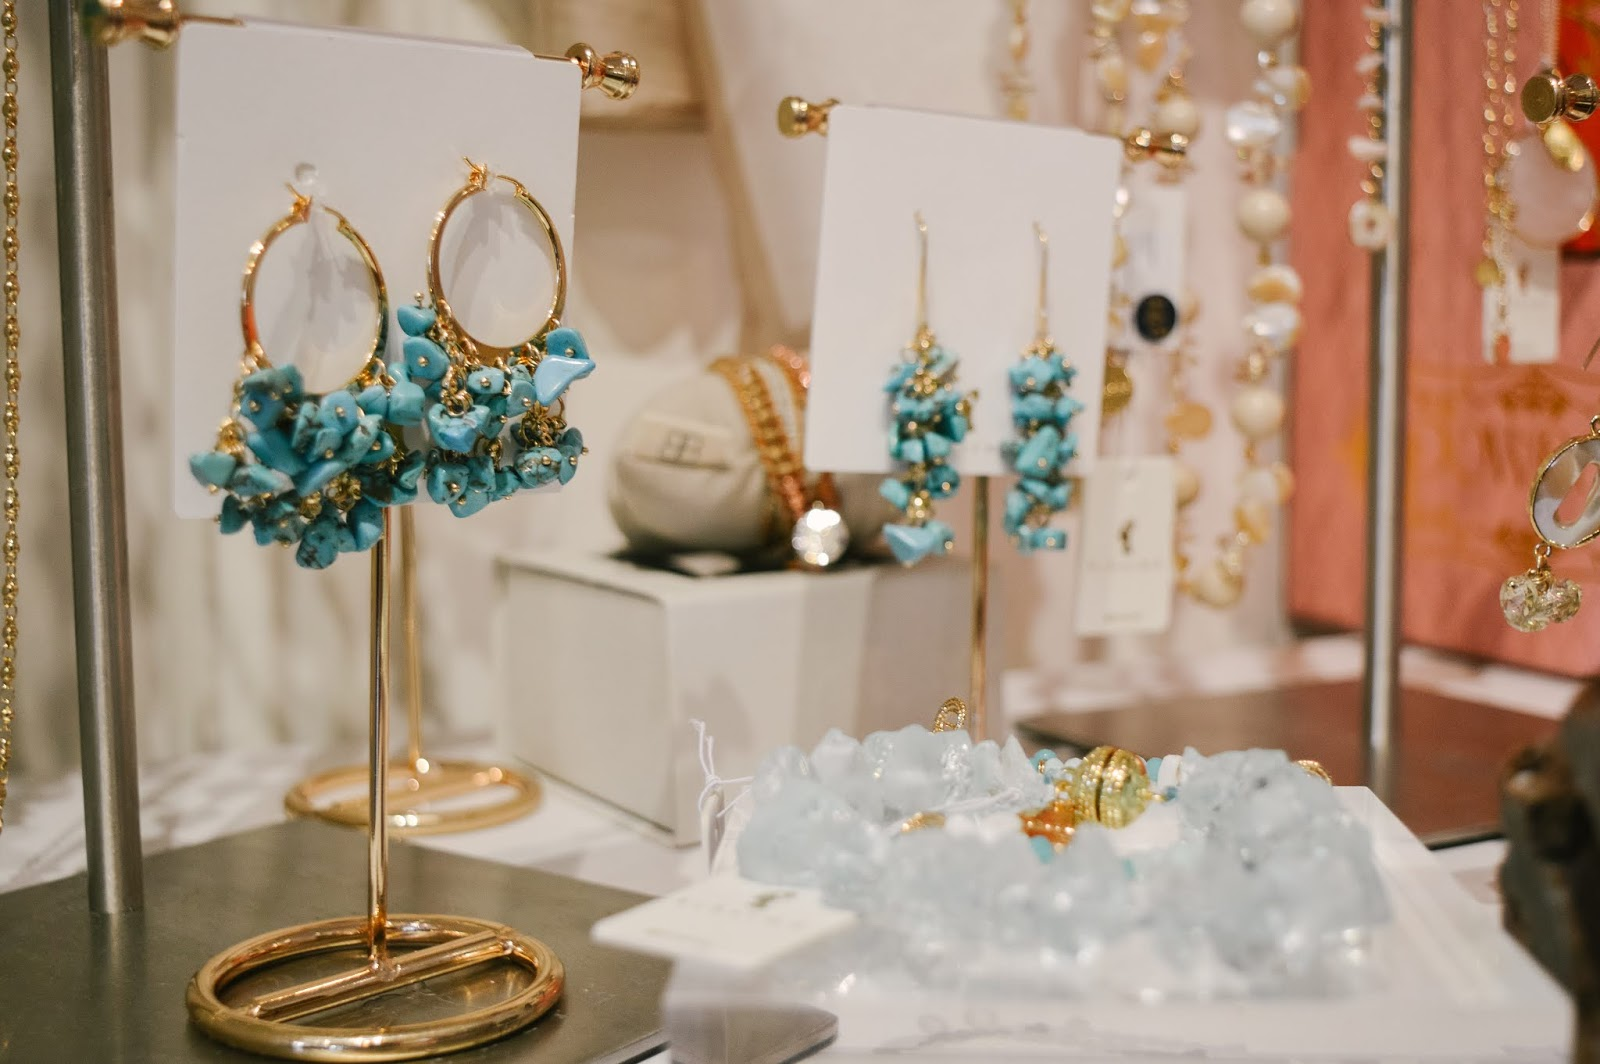 Bcharmed jewellery at The Owl & The Pussycat Stockbridge Fashion Boutique